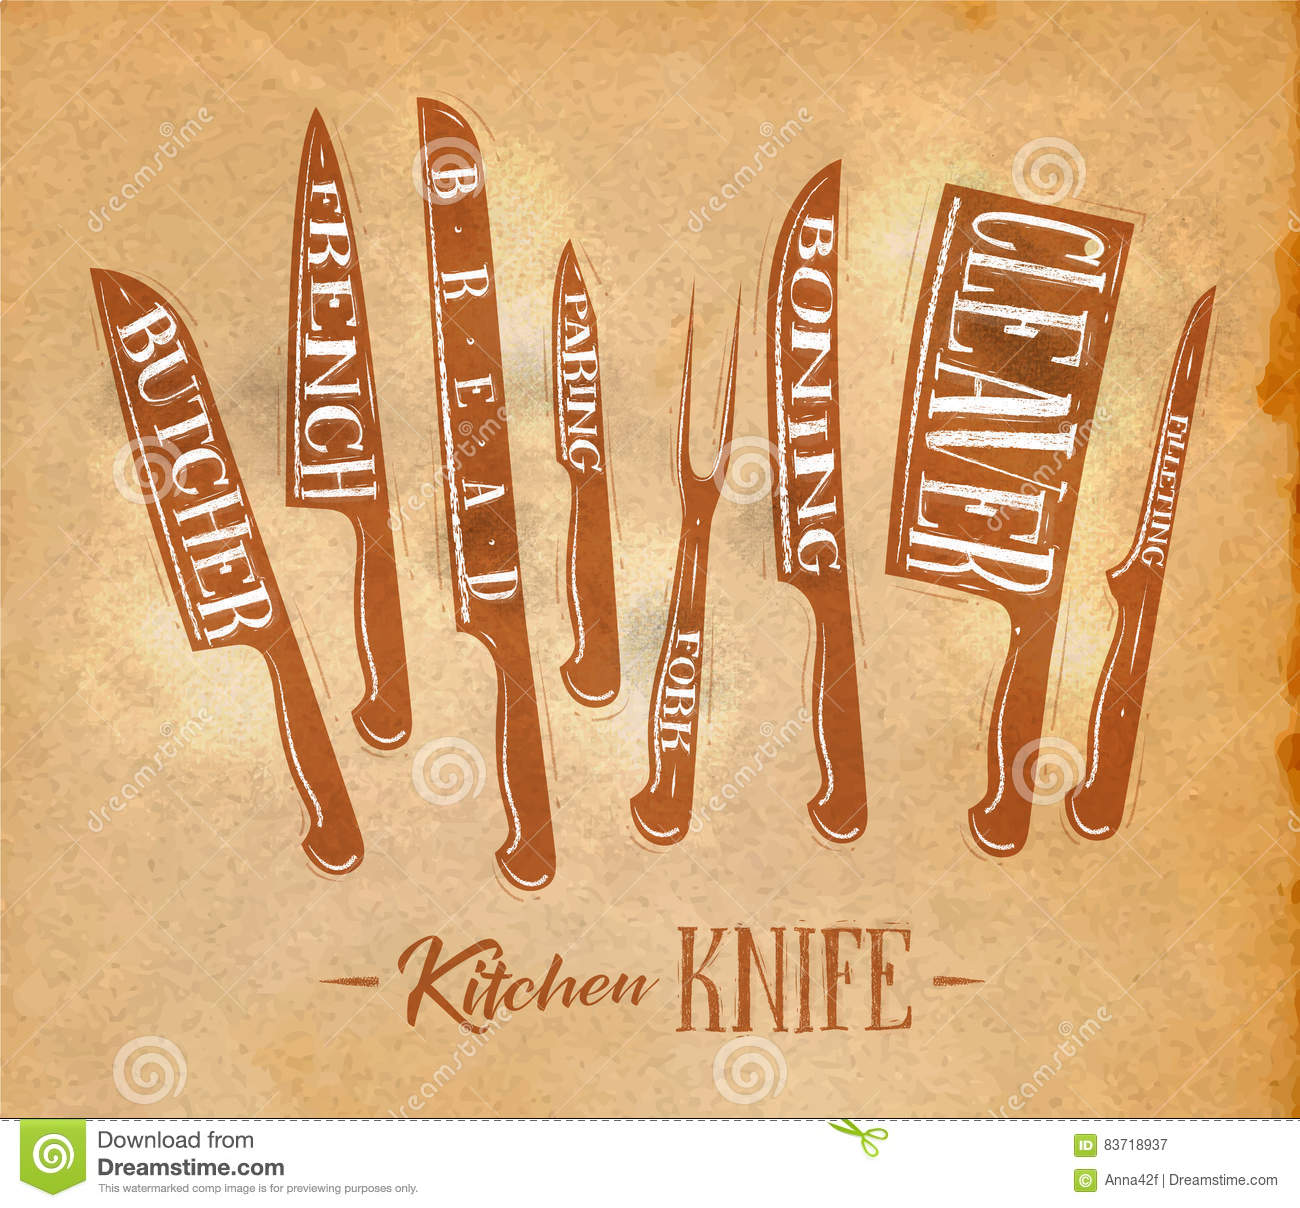 kitchen meat cutting knifes poster craft stock vector illustration